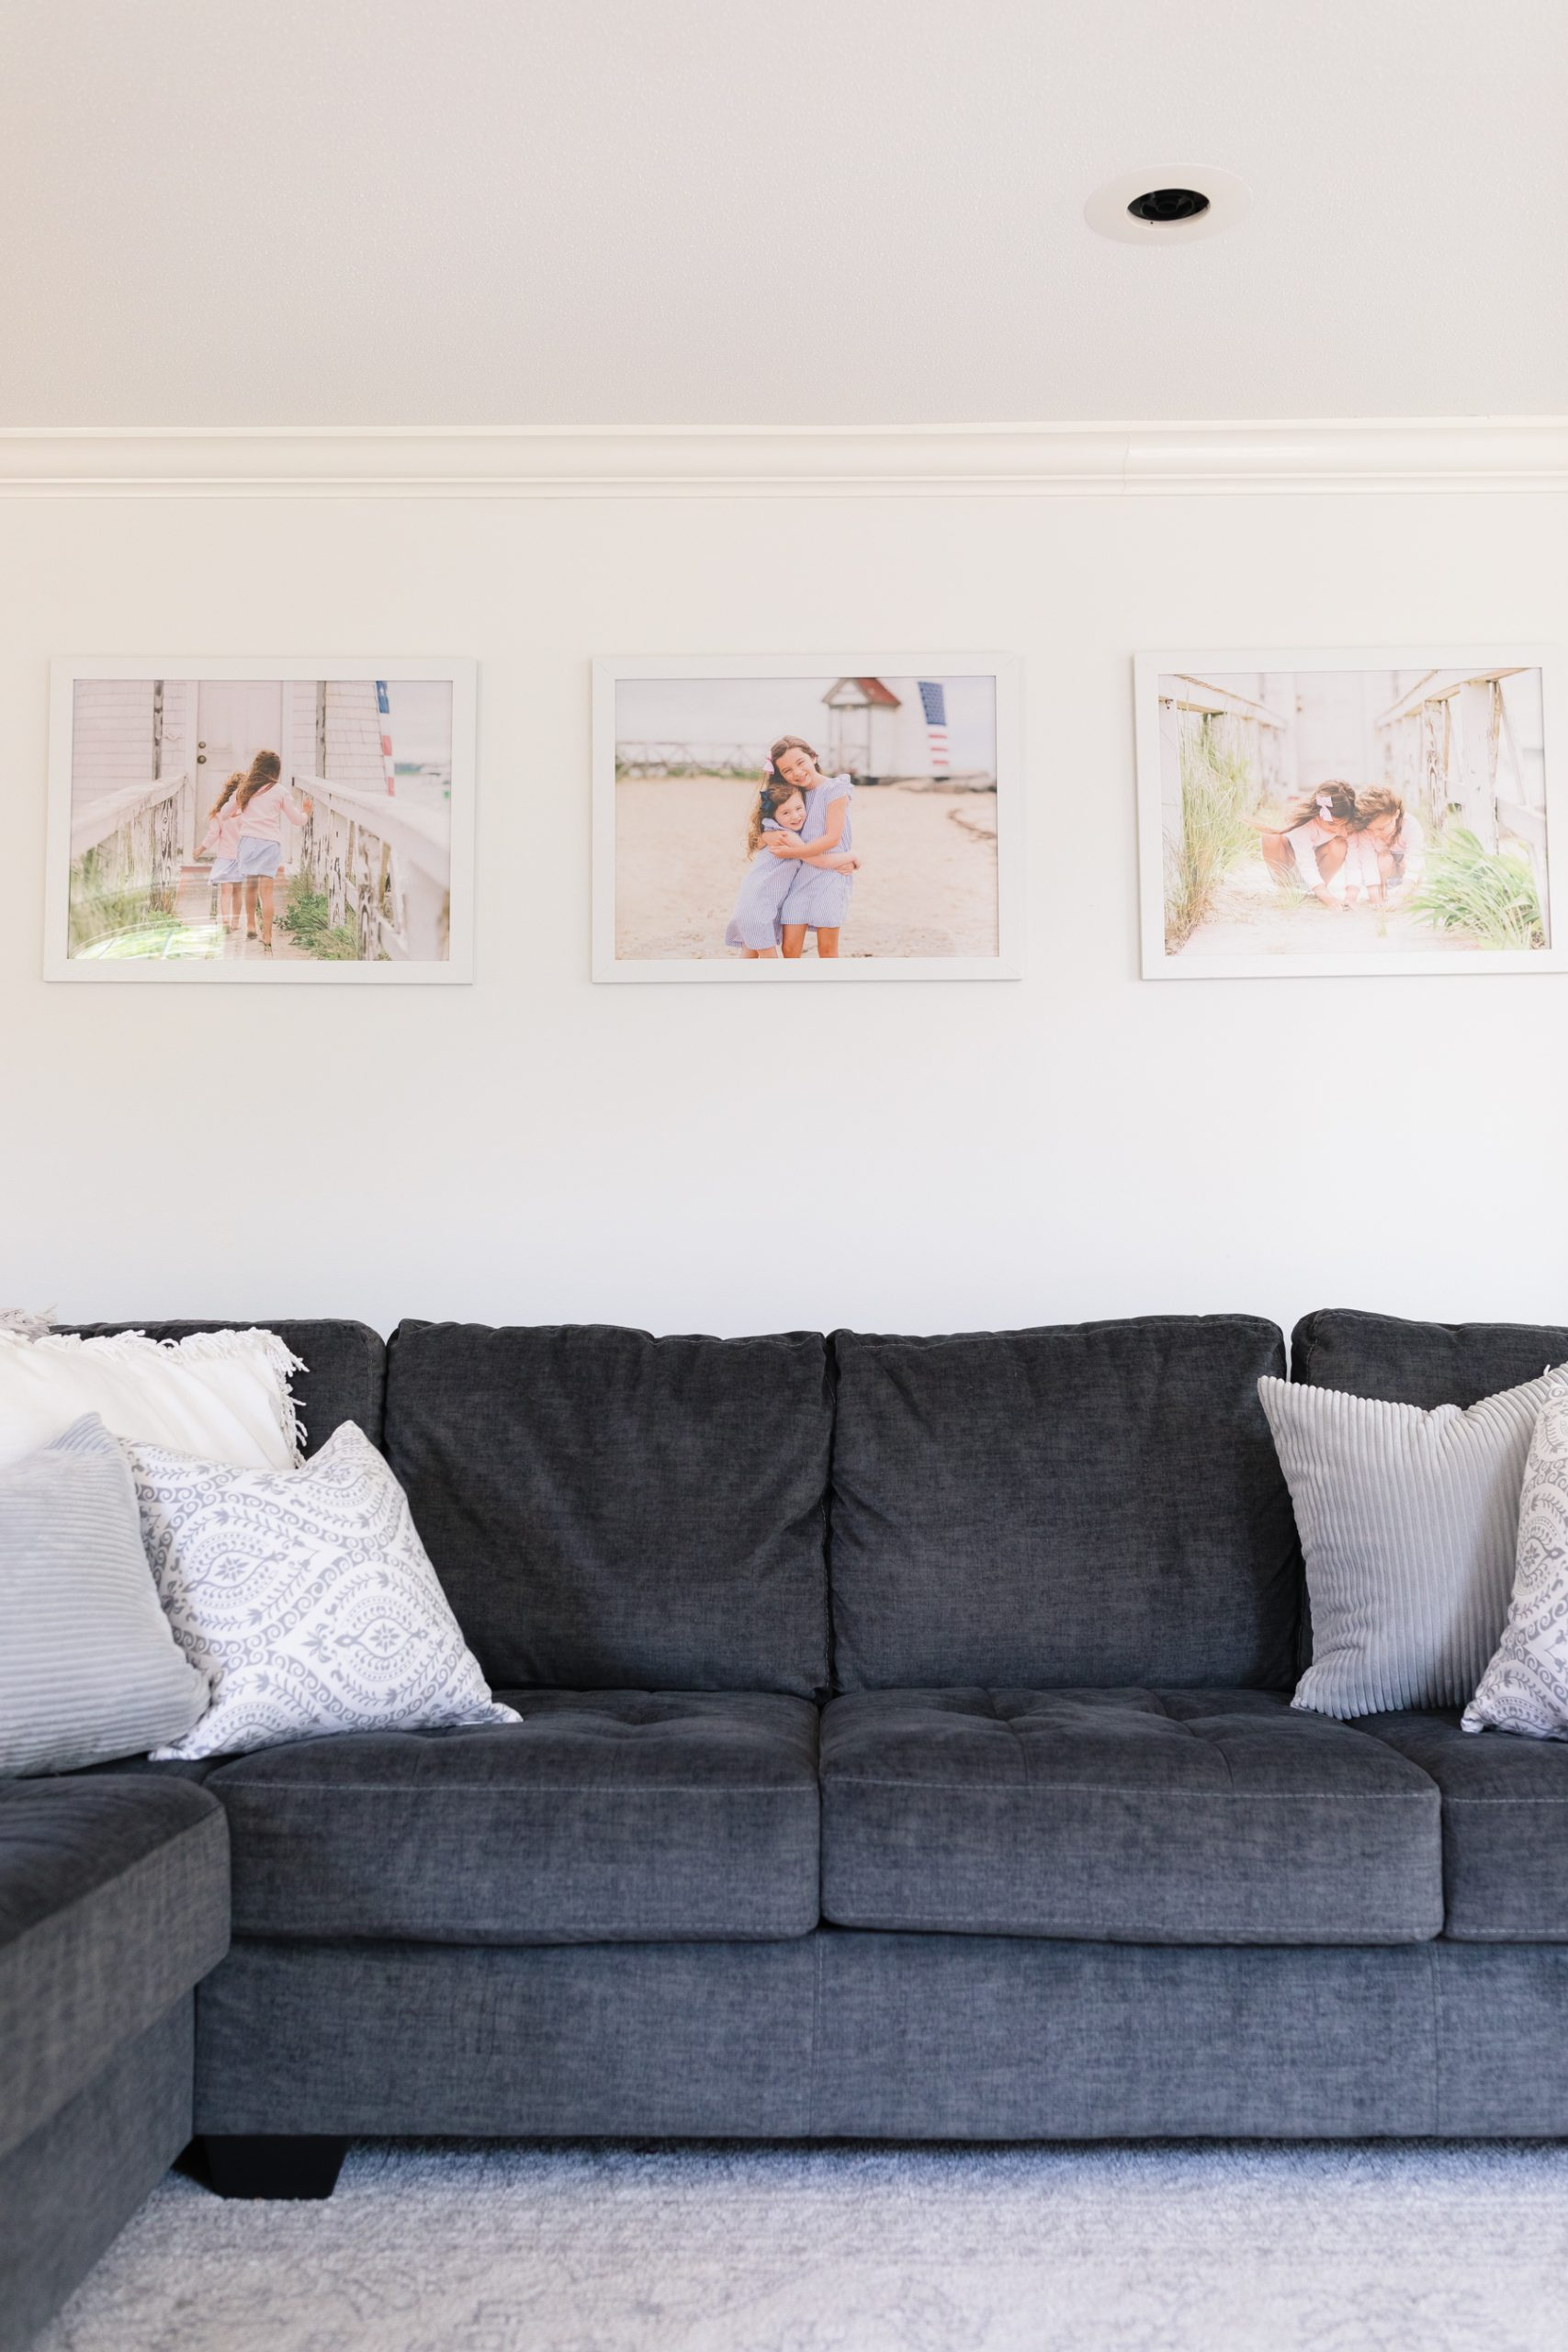 enlarged prints hanging on wall above couch